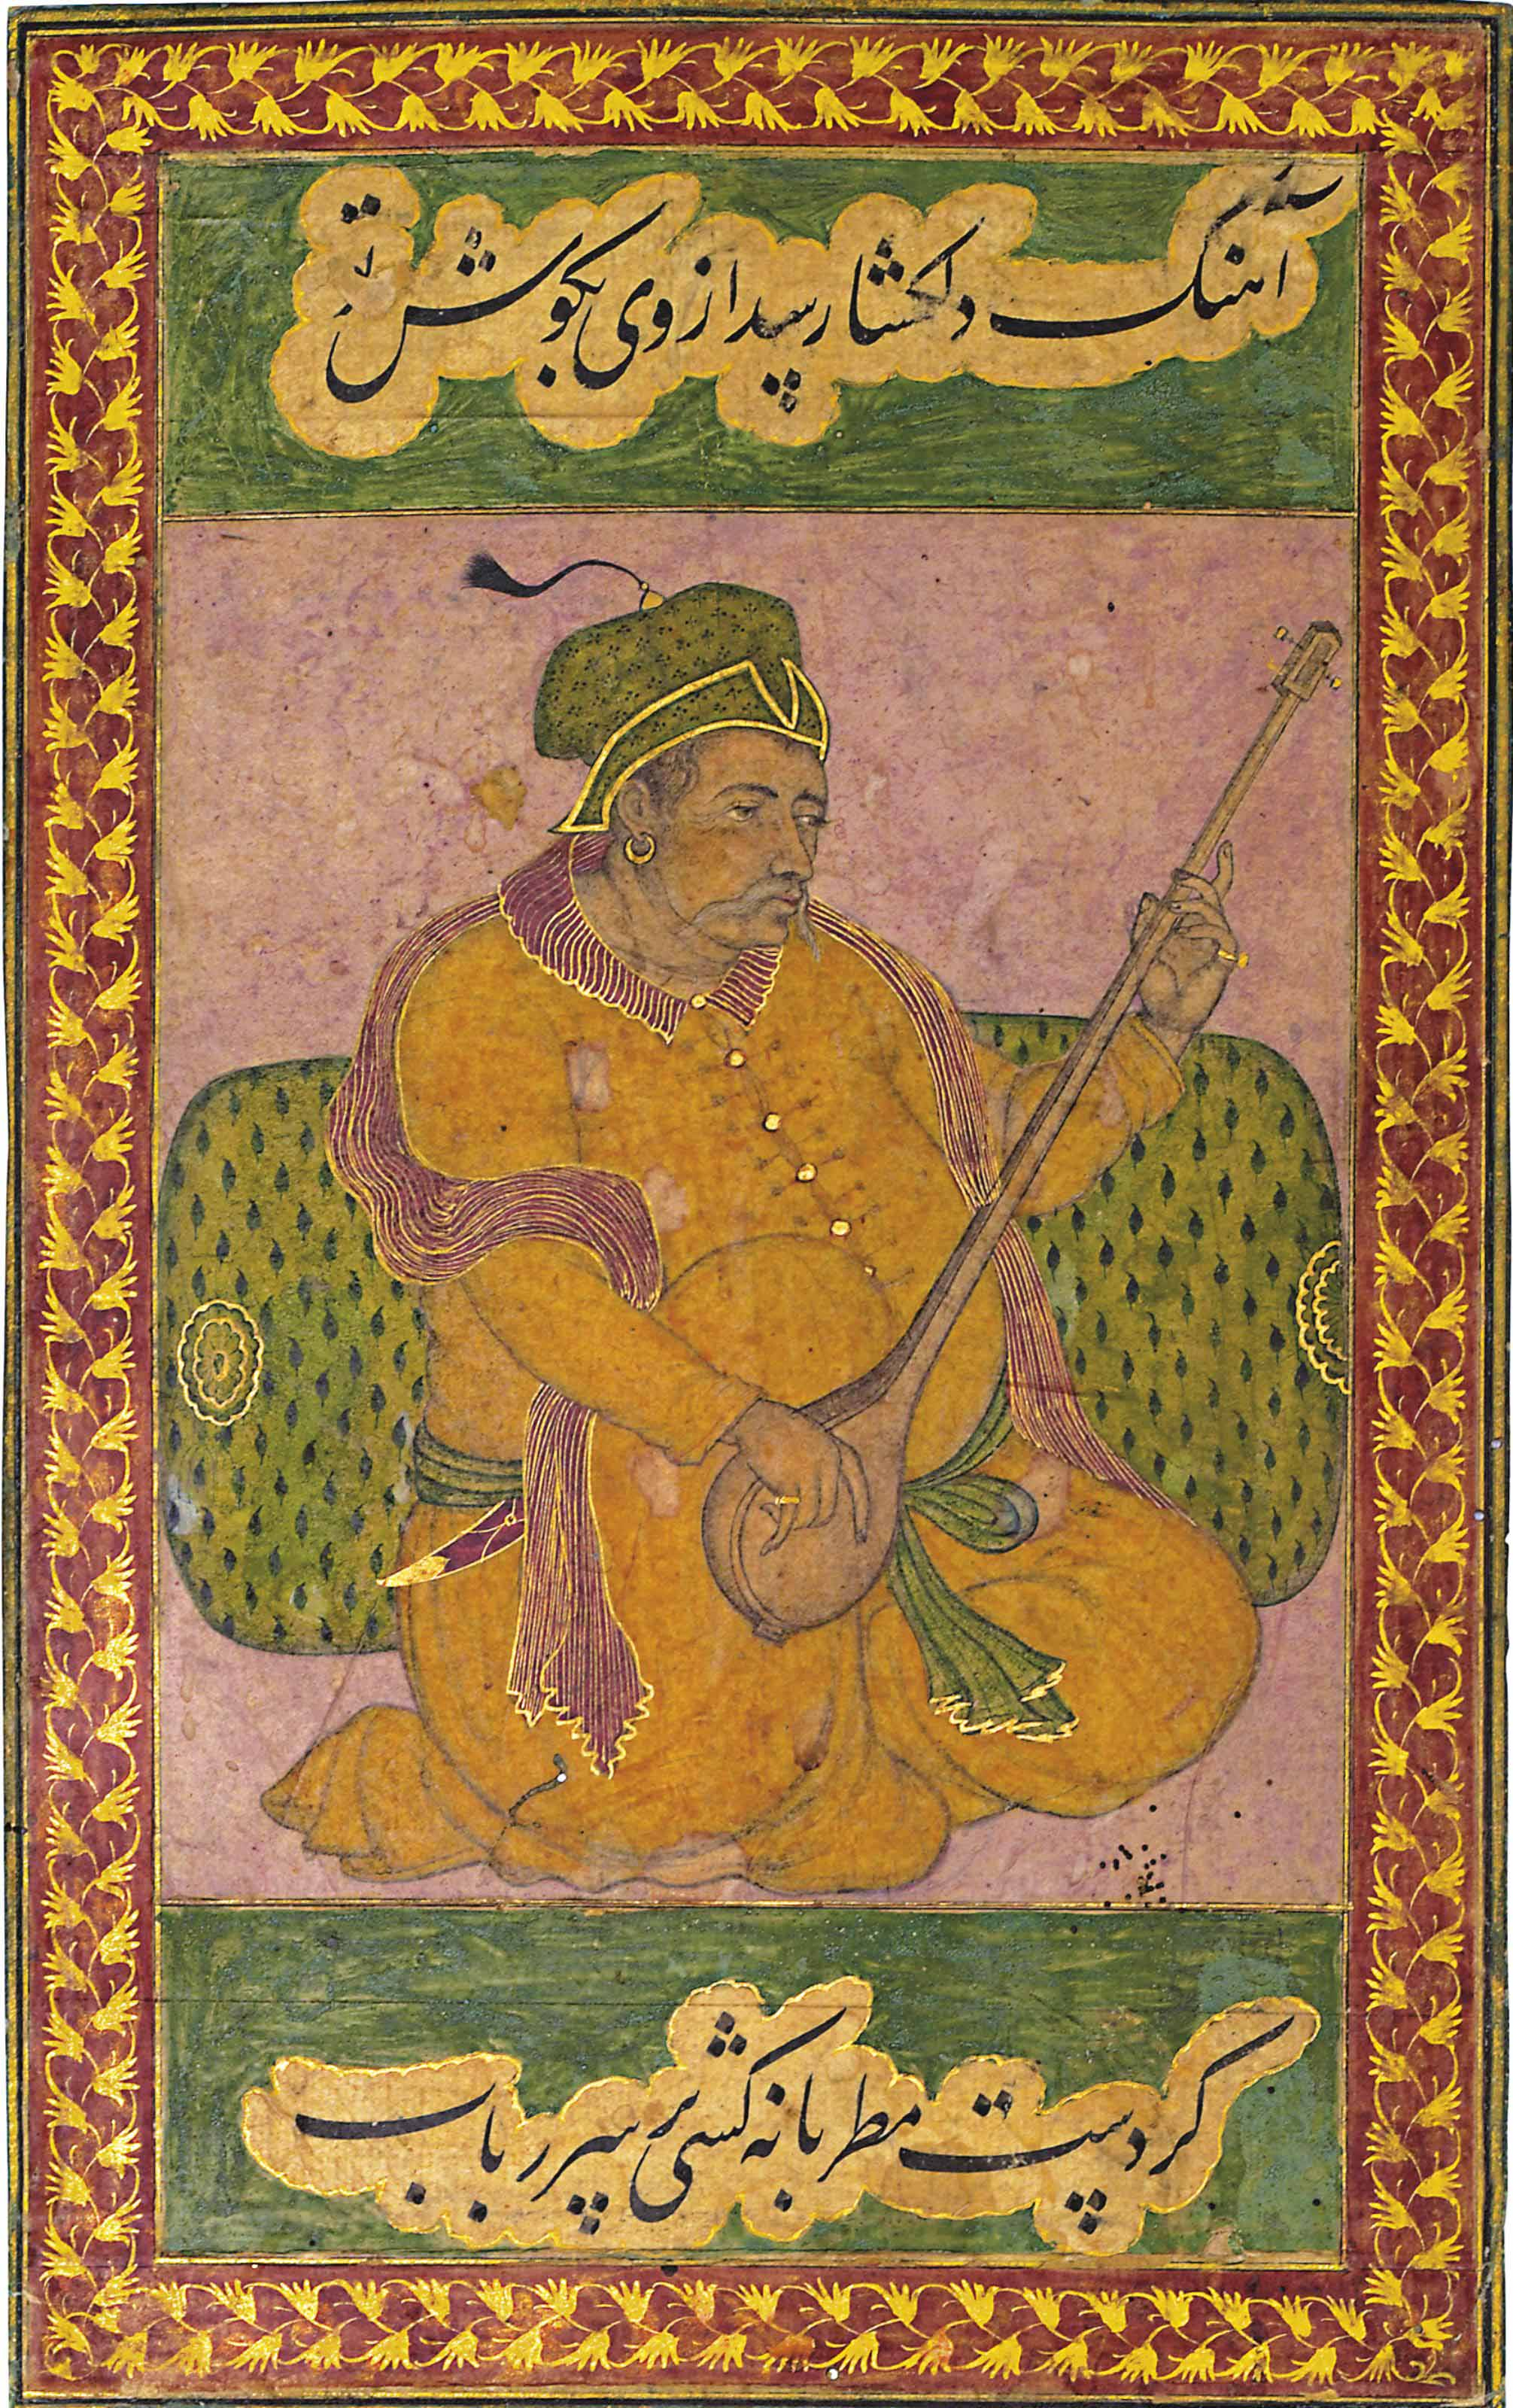 A MUSICIAN PLAYING THE TAMPURA